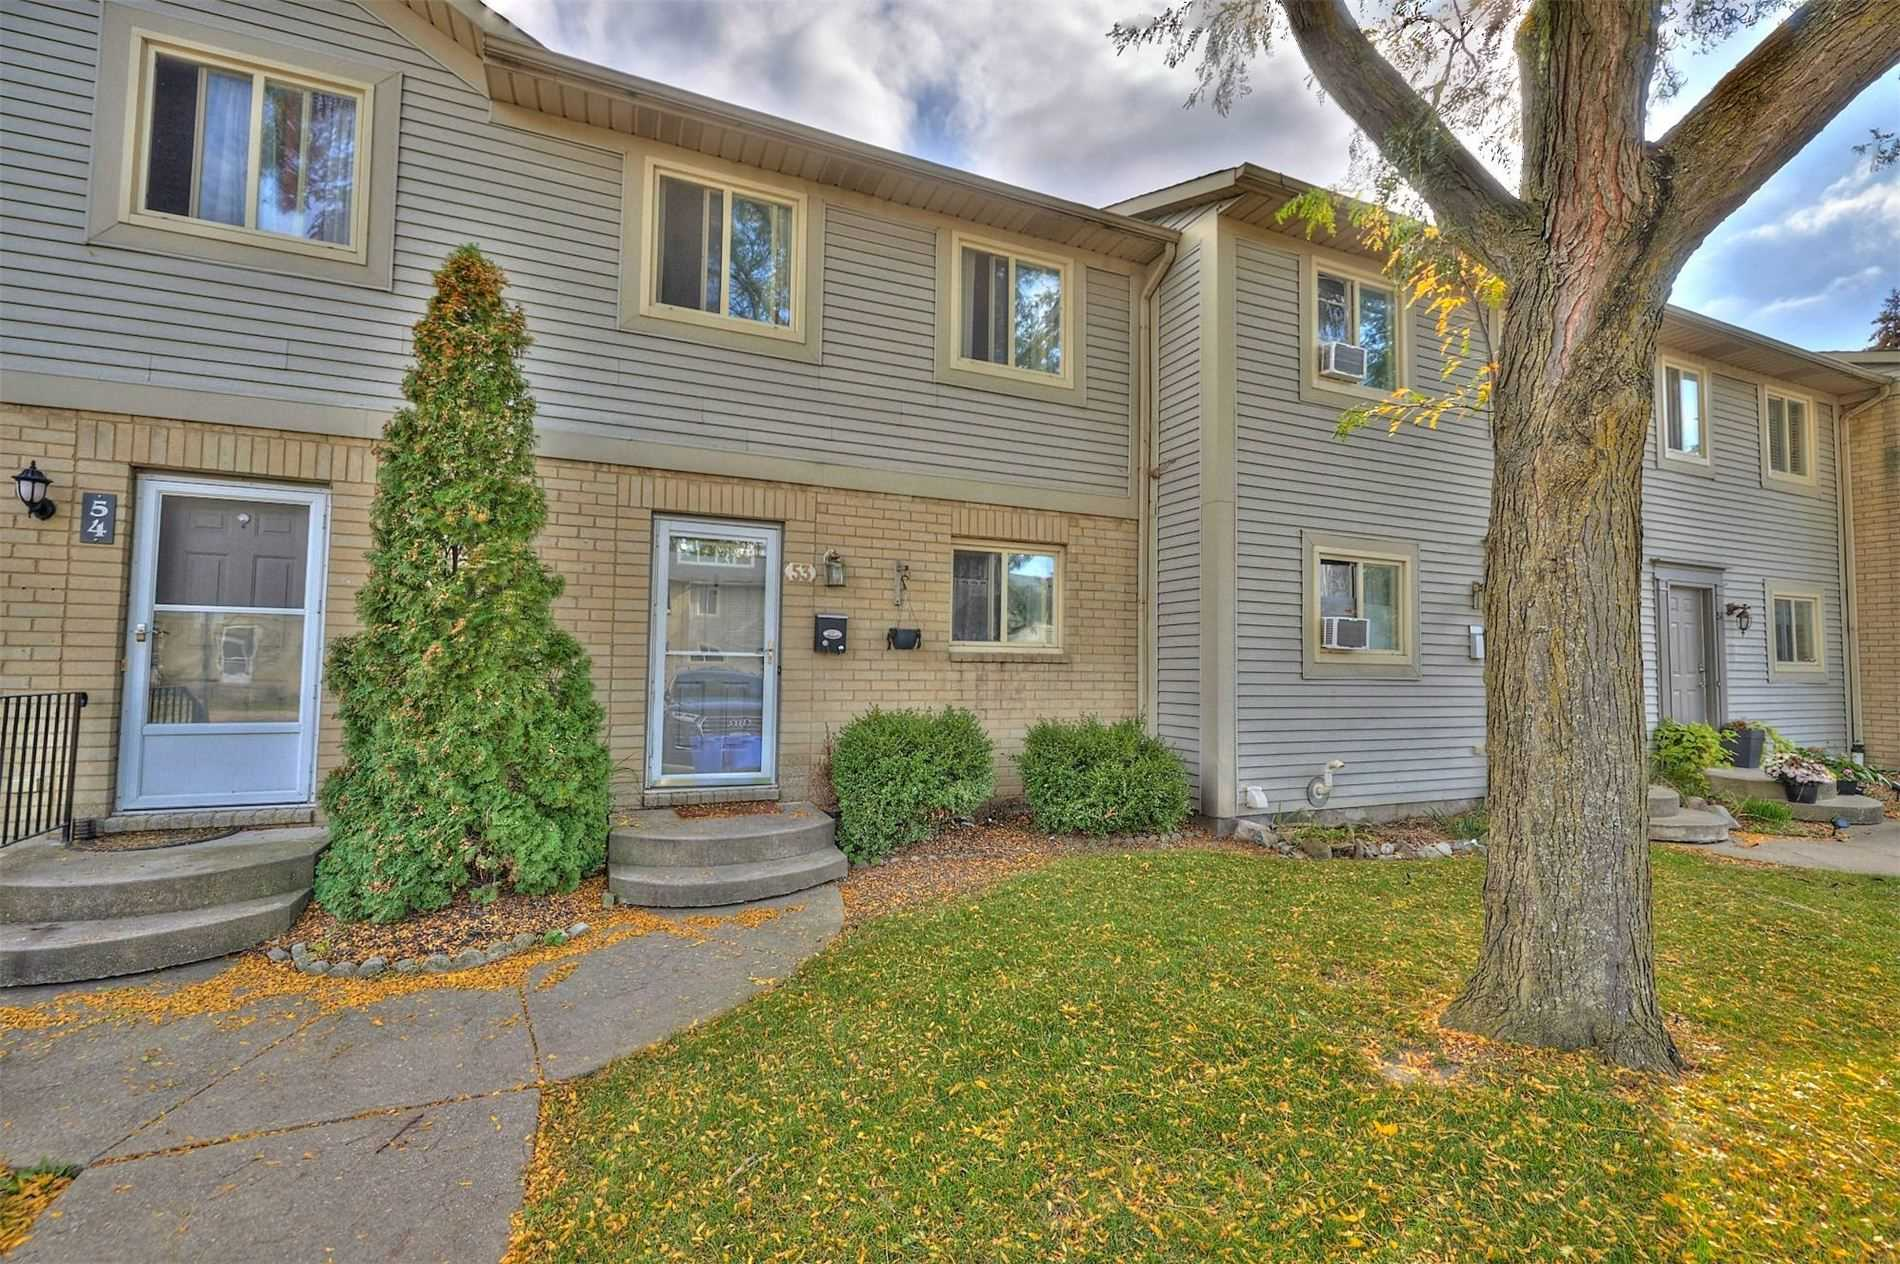 Condo Townhouse For Sale In St. Catharines , 2 Bedrooms Bedrooms, ,2 BathroomsBathrooms,Condo Townhouse,For Sale,53,Dorchester